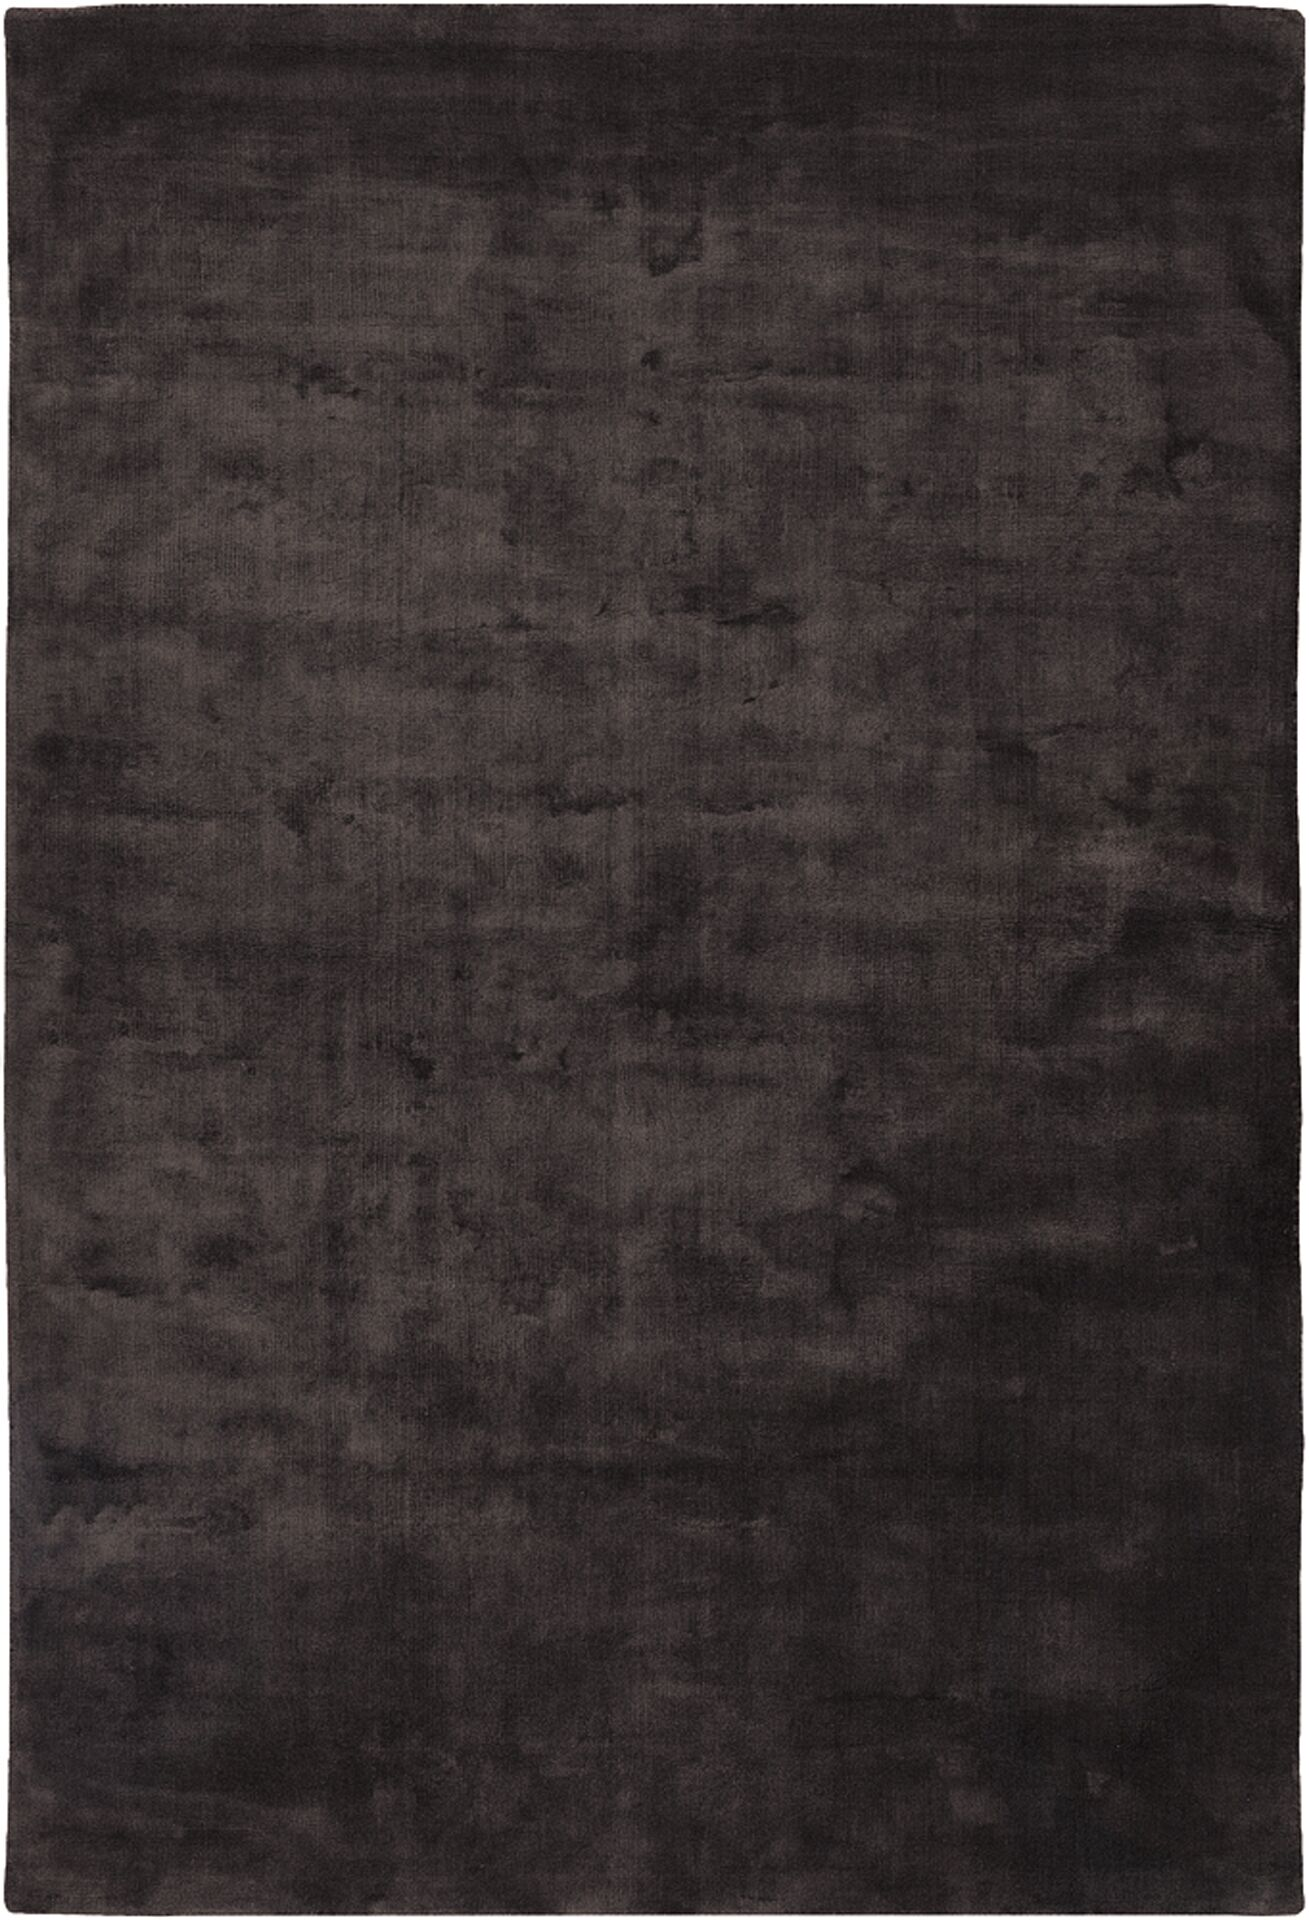 Mabel Hand Woven Brown Area Rug Rug Size: 9' x 13'